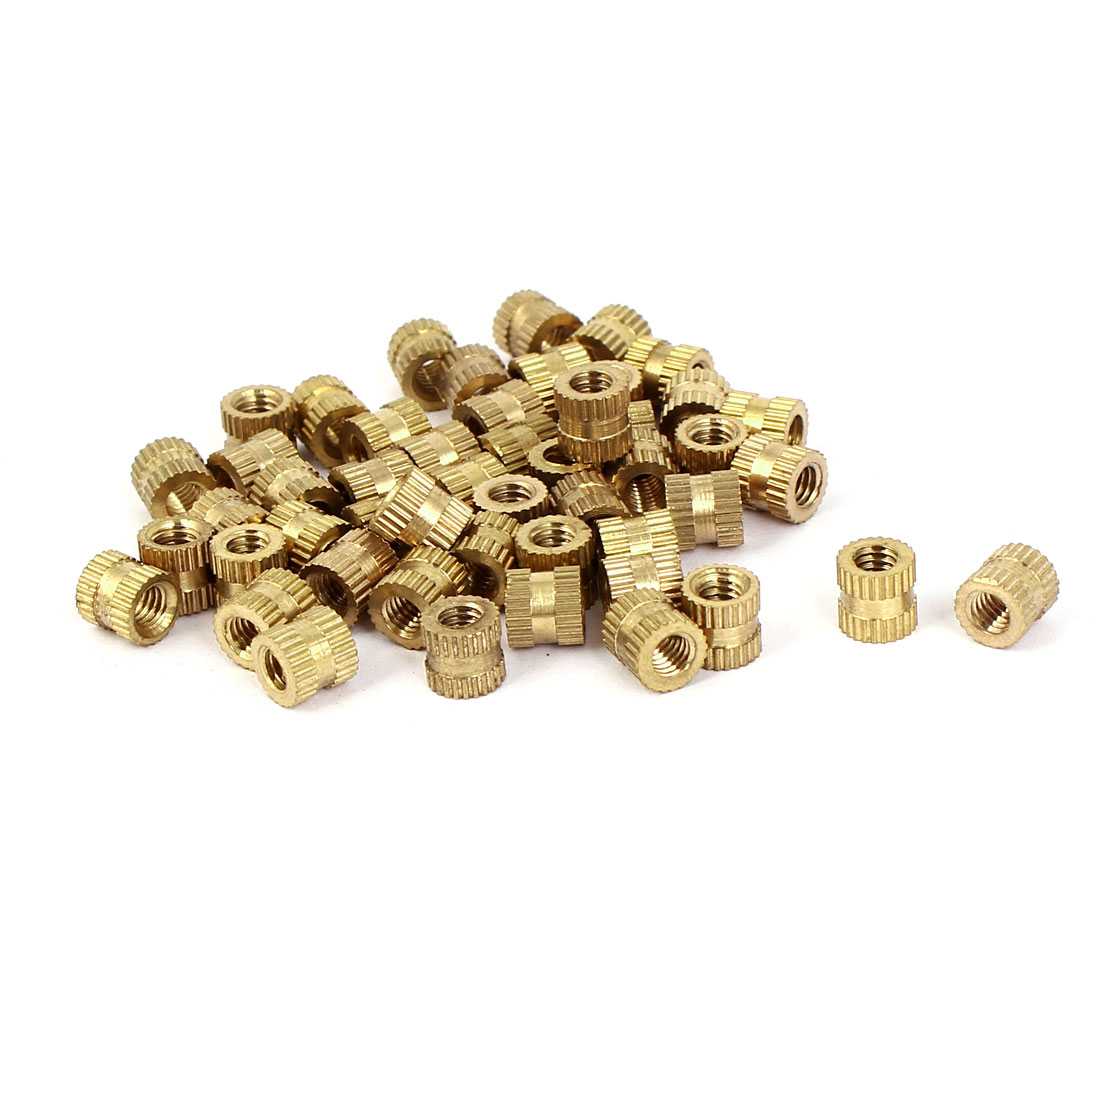 M4x6mm 6mm OD Brass Embedded Knurled Insert Thumb Nuts 50pcs